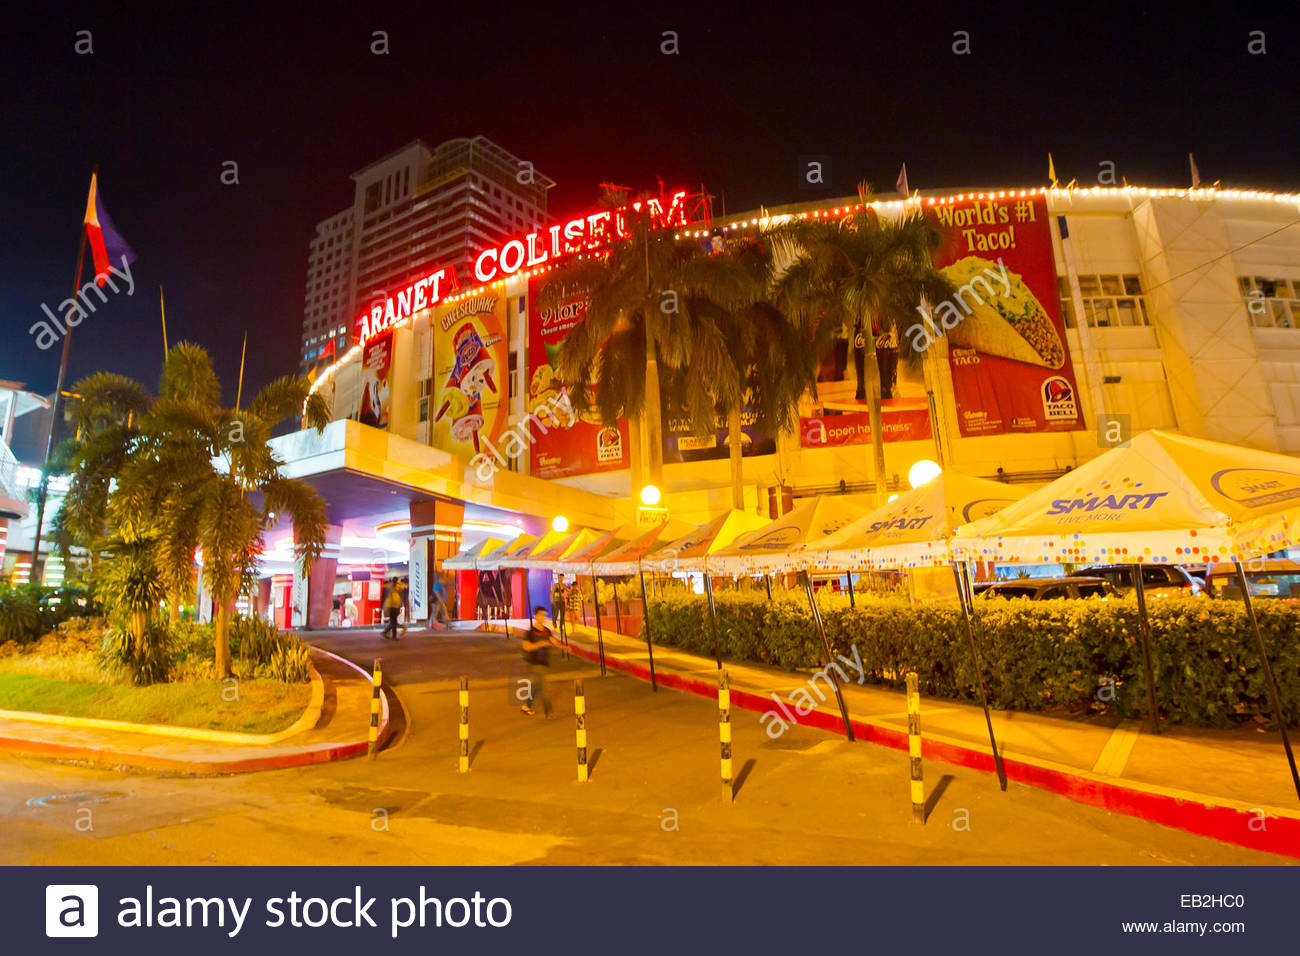 The Aranet Coliseum where the famous Thrilla in Manila boxing match was fought between Muhammad Ali and Joe Frazier. Stock Photo